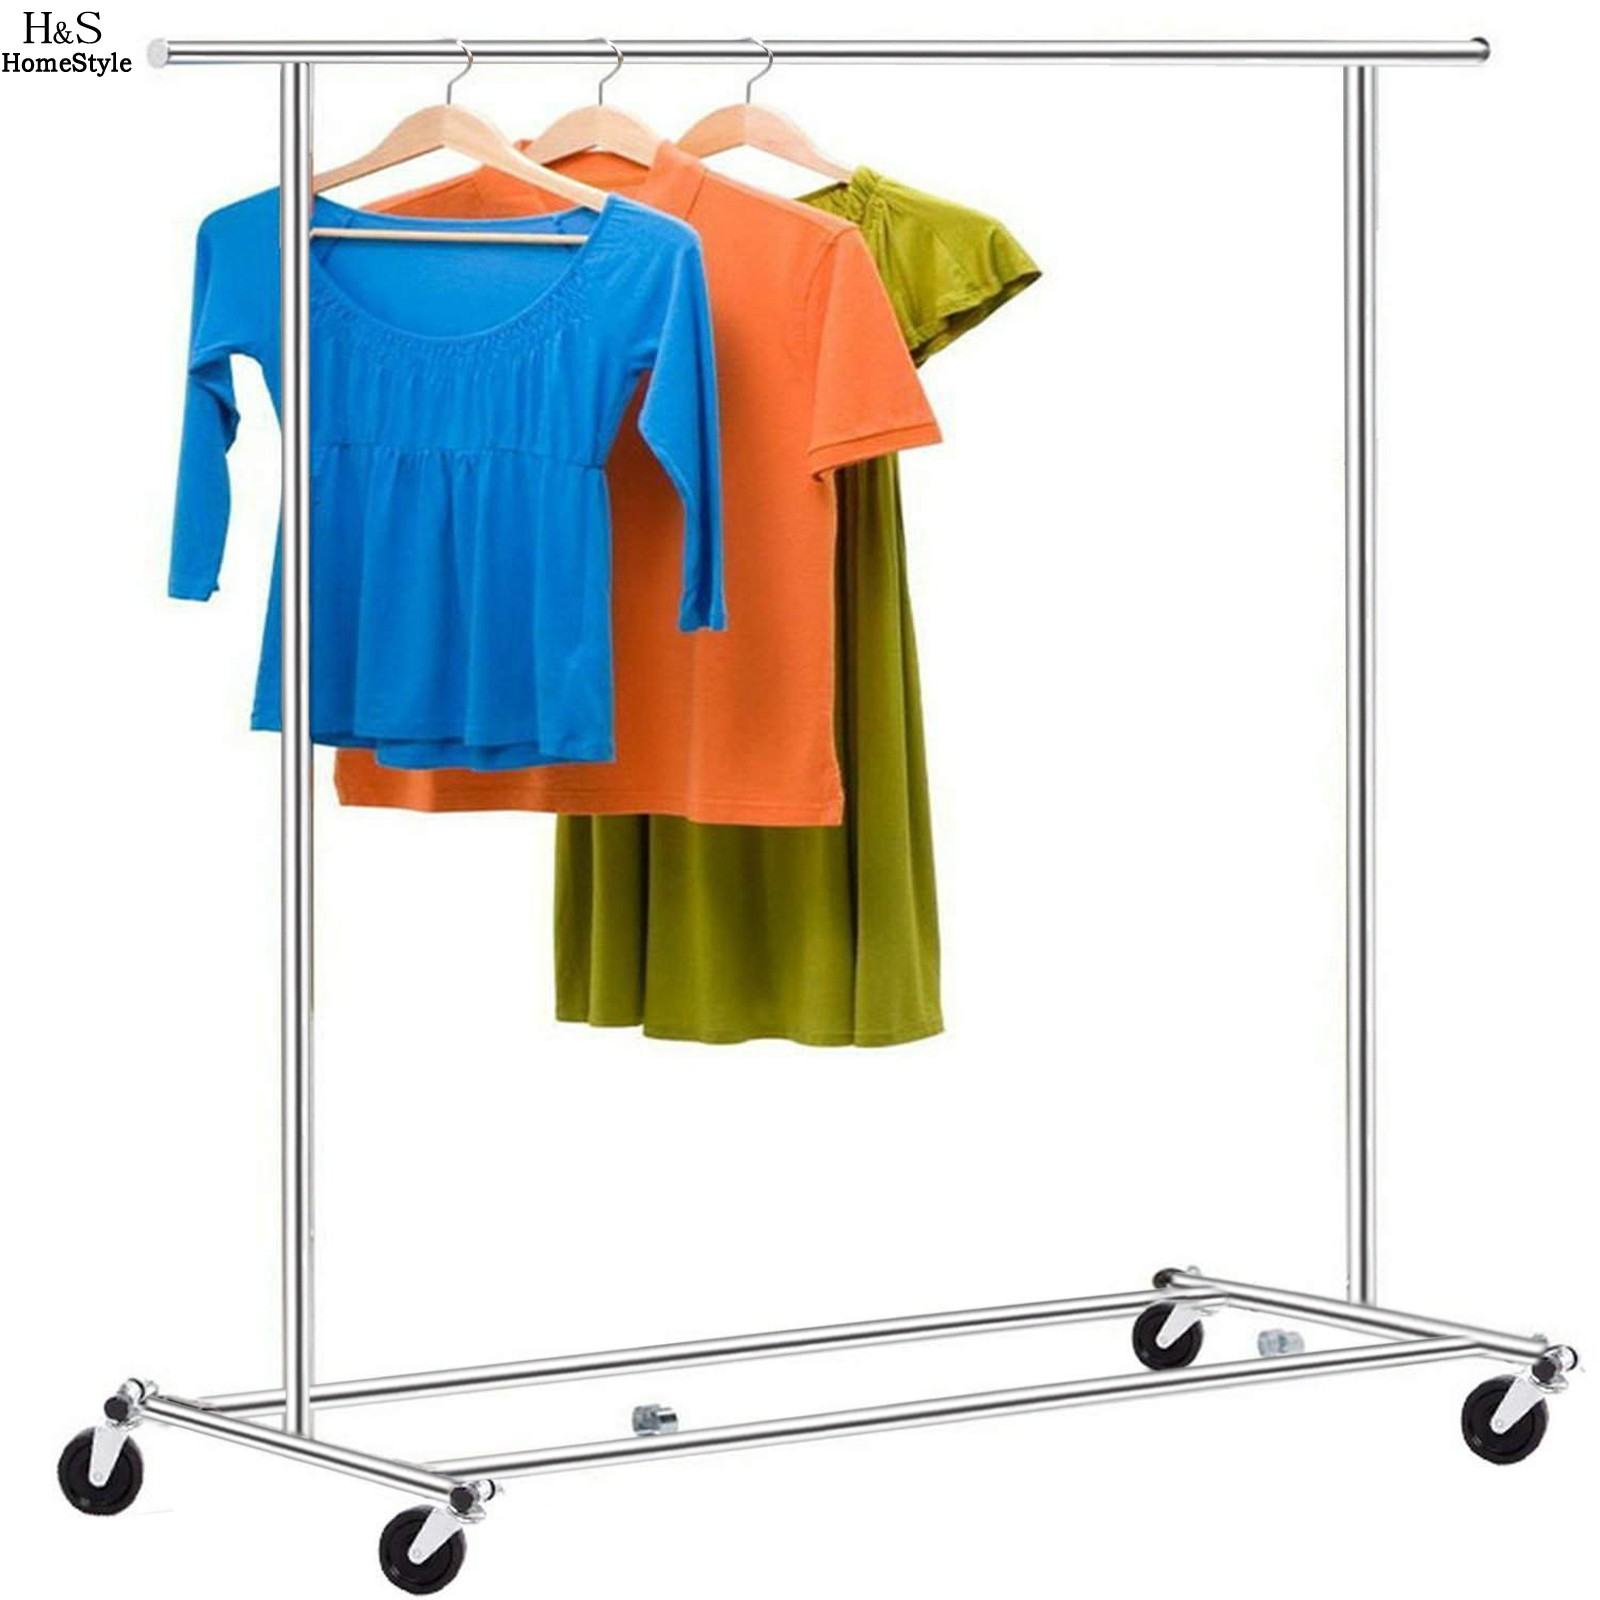 homdox adjustable portable clothes hangers garment drying display hanging racks with rolling wheels n20